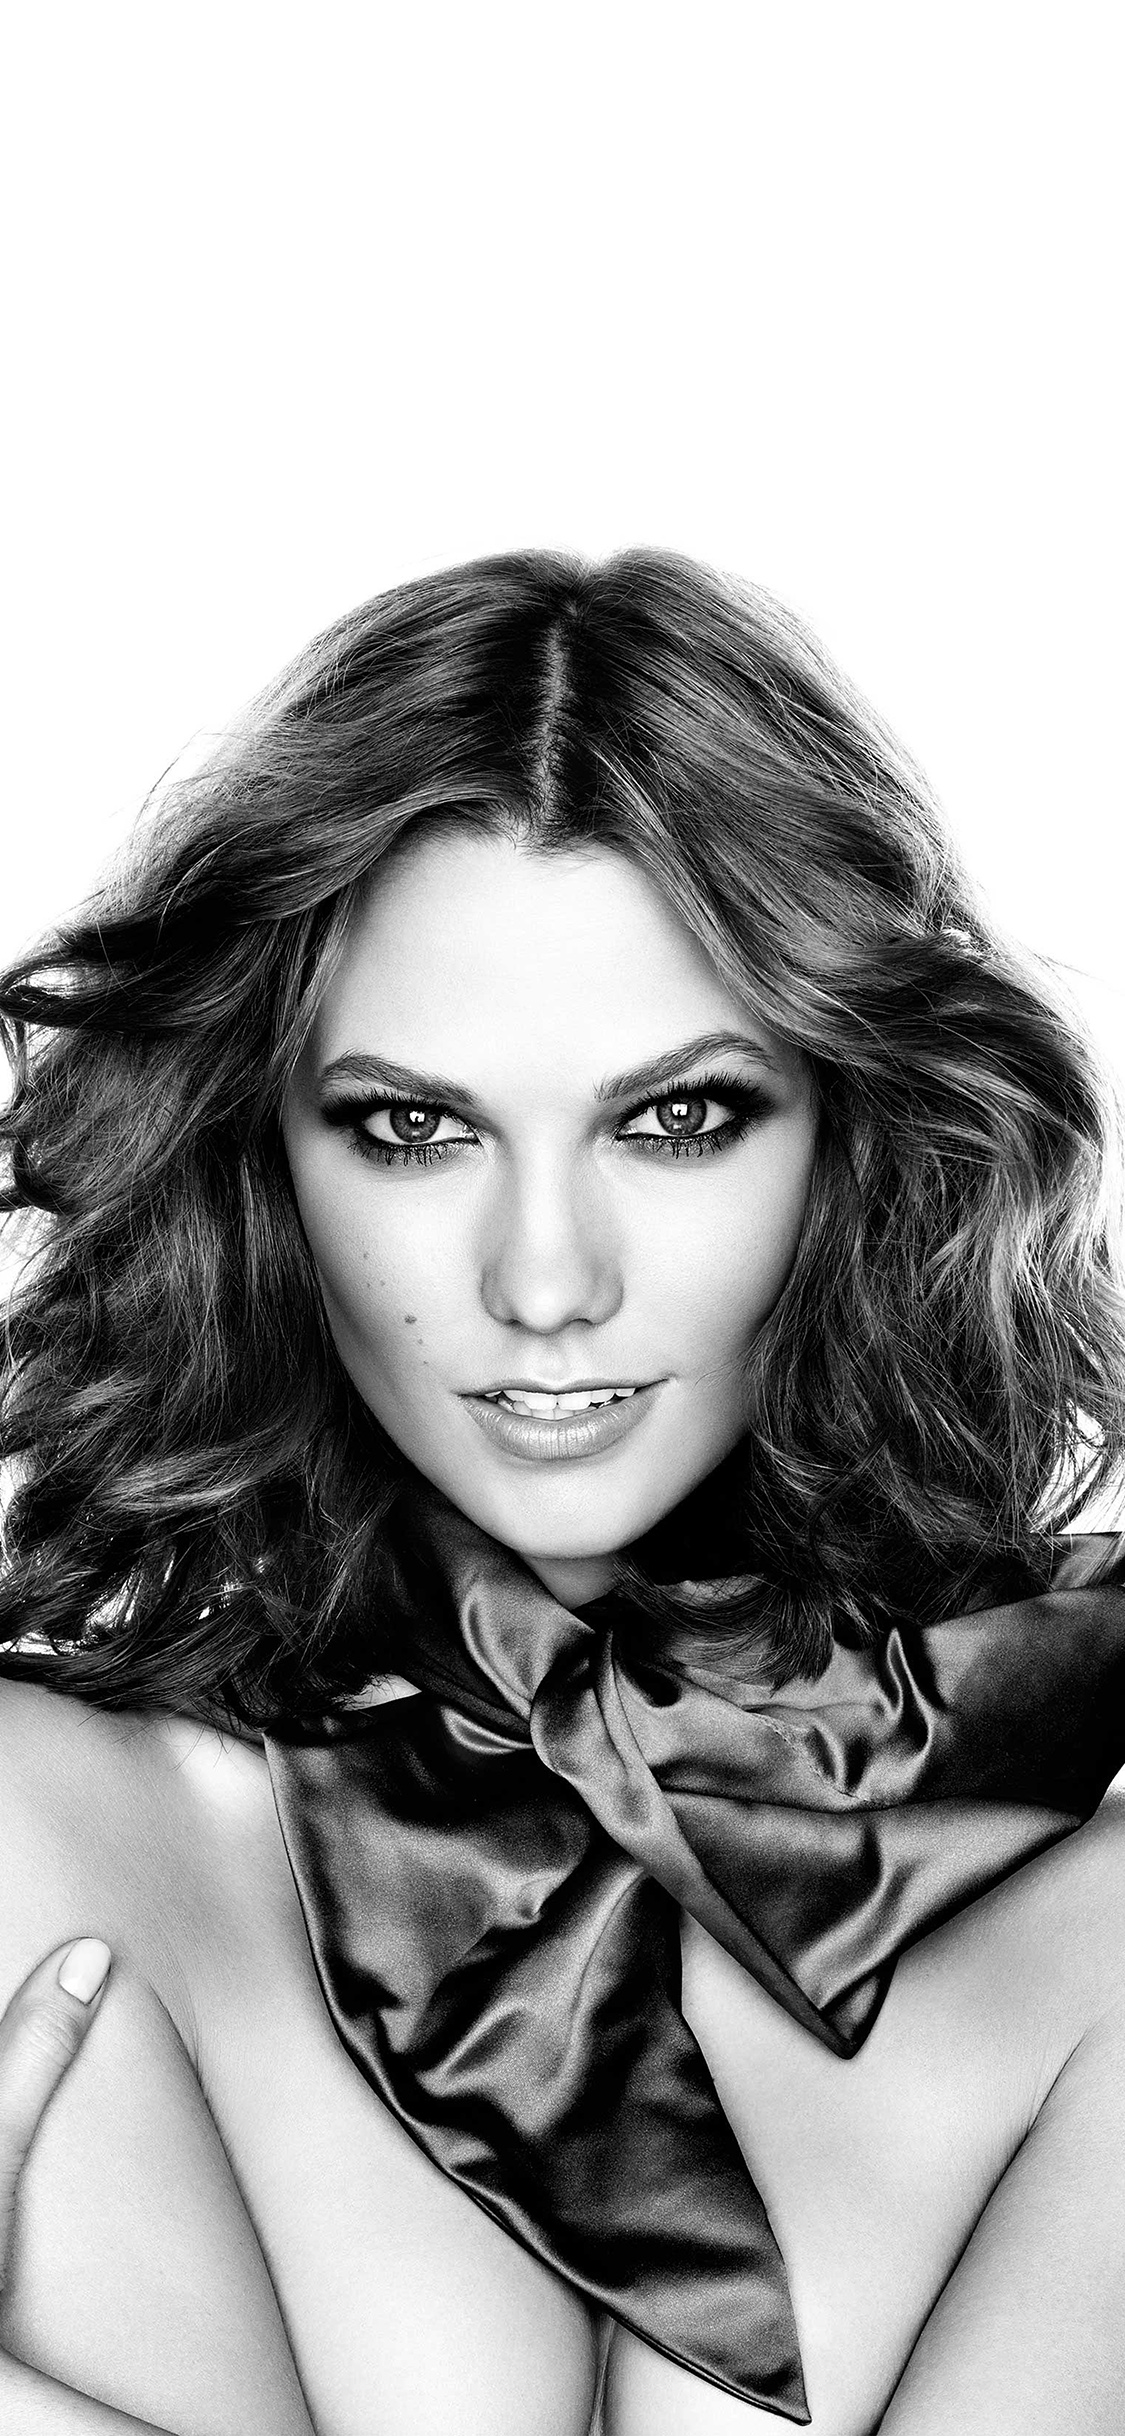 iPhoneXpapers.com-Apple-iPhone-wallpaper-hg42-karlie-kloss-model-bw-present-sexy